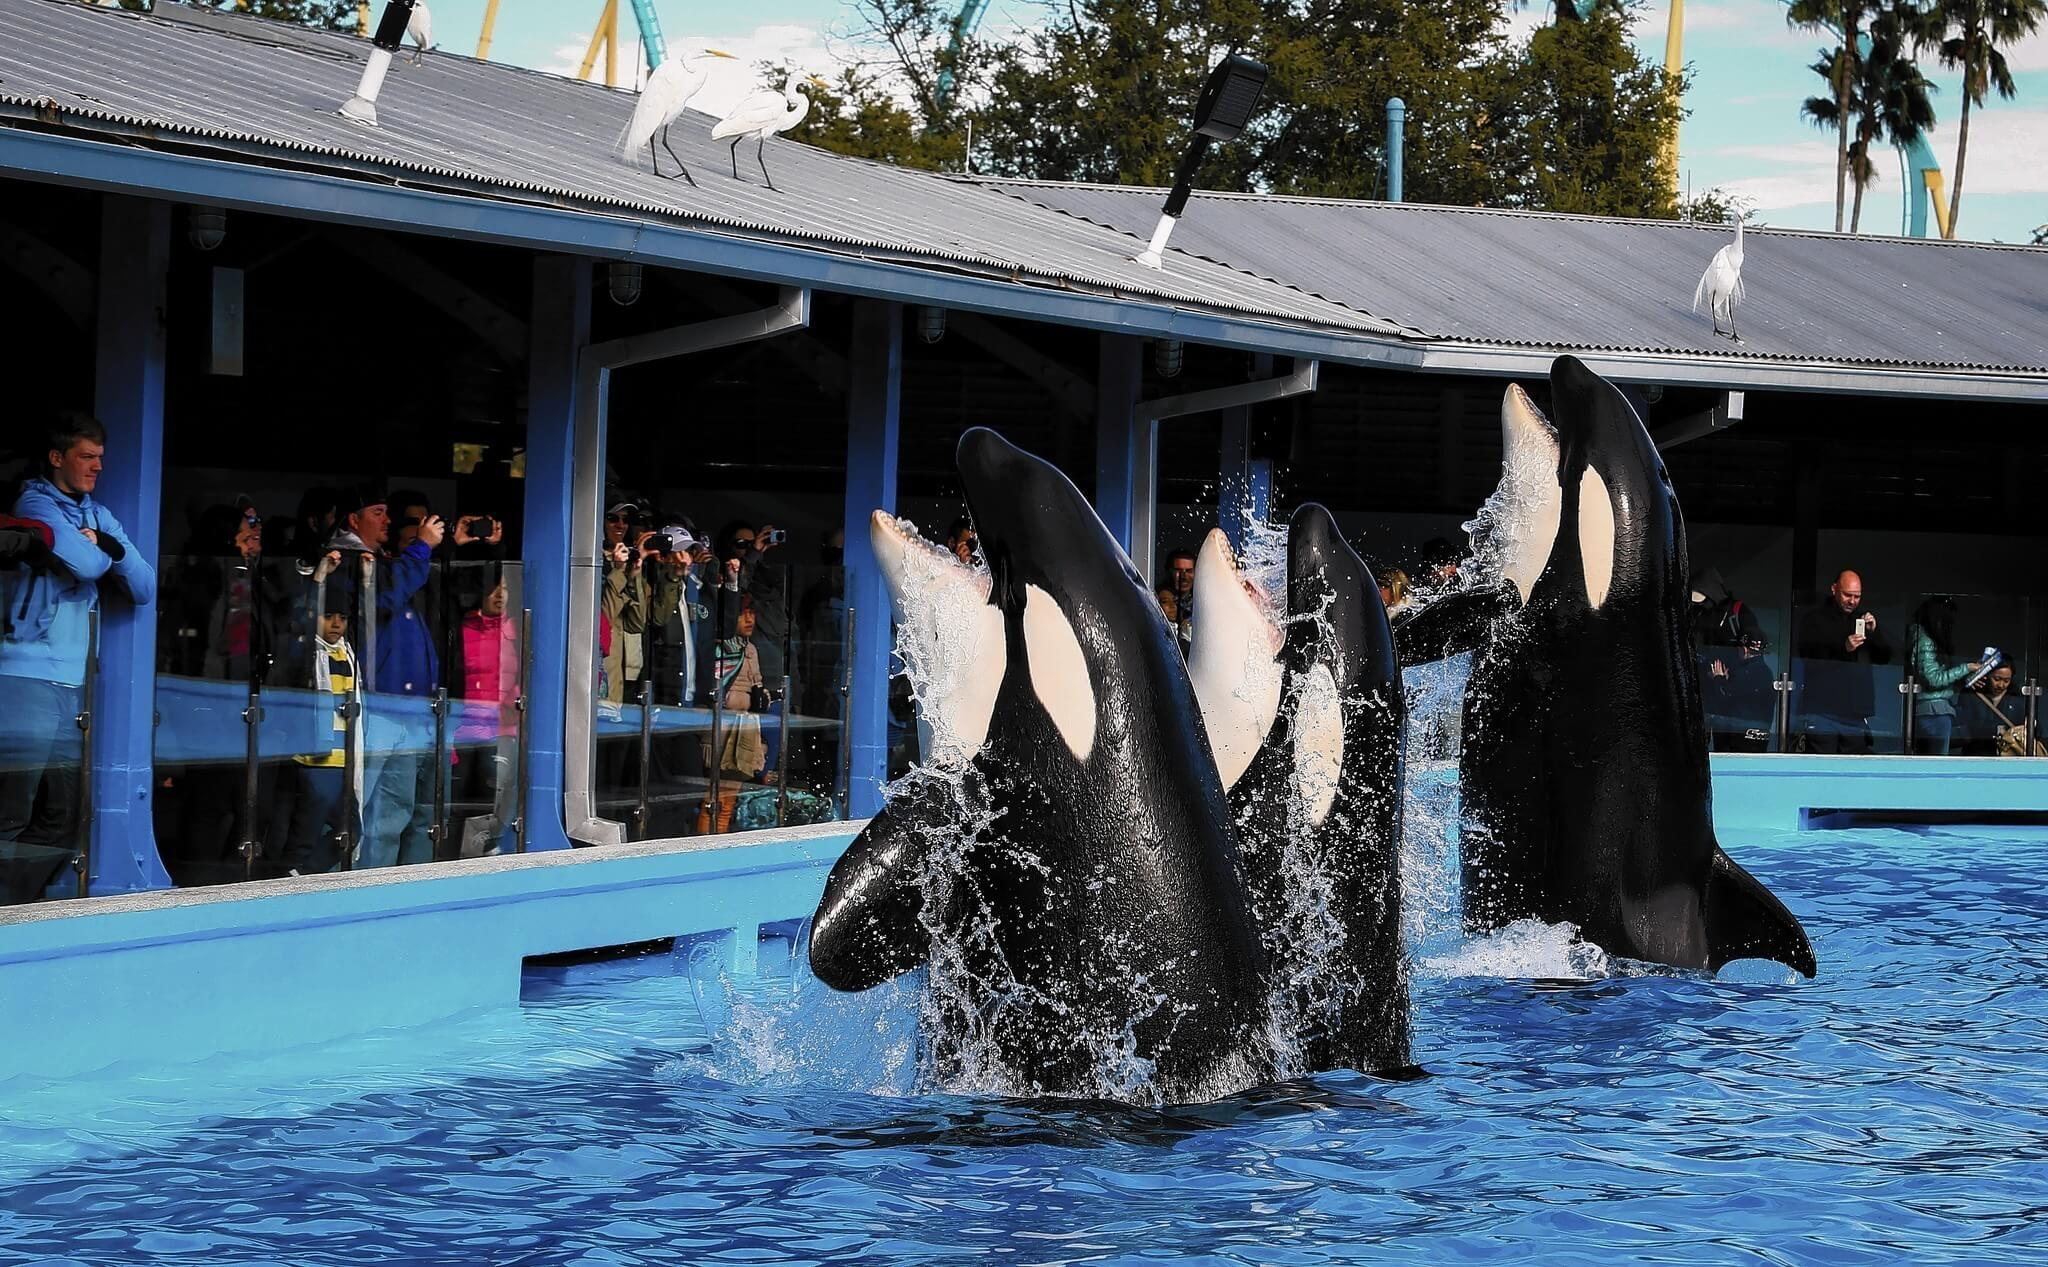 Parque SeaWorld em Orlando: baleias no Dining with Orcas